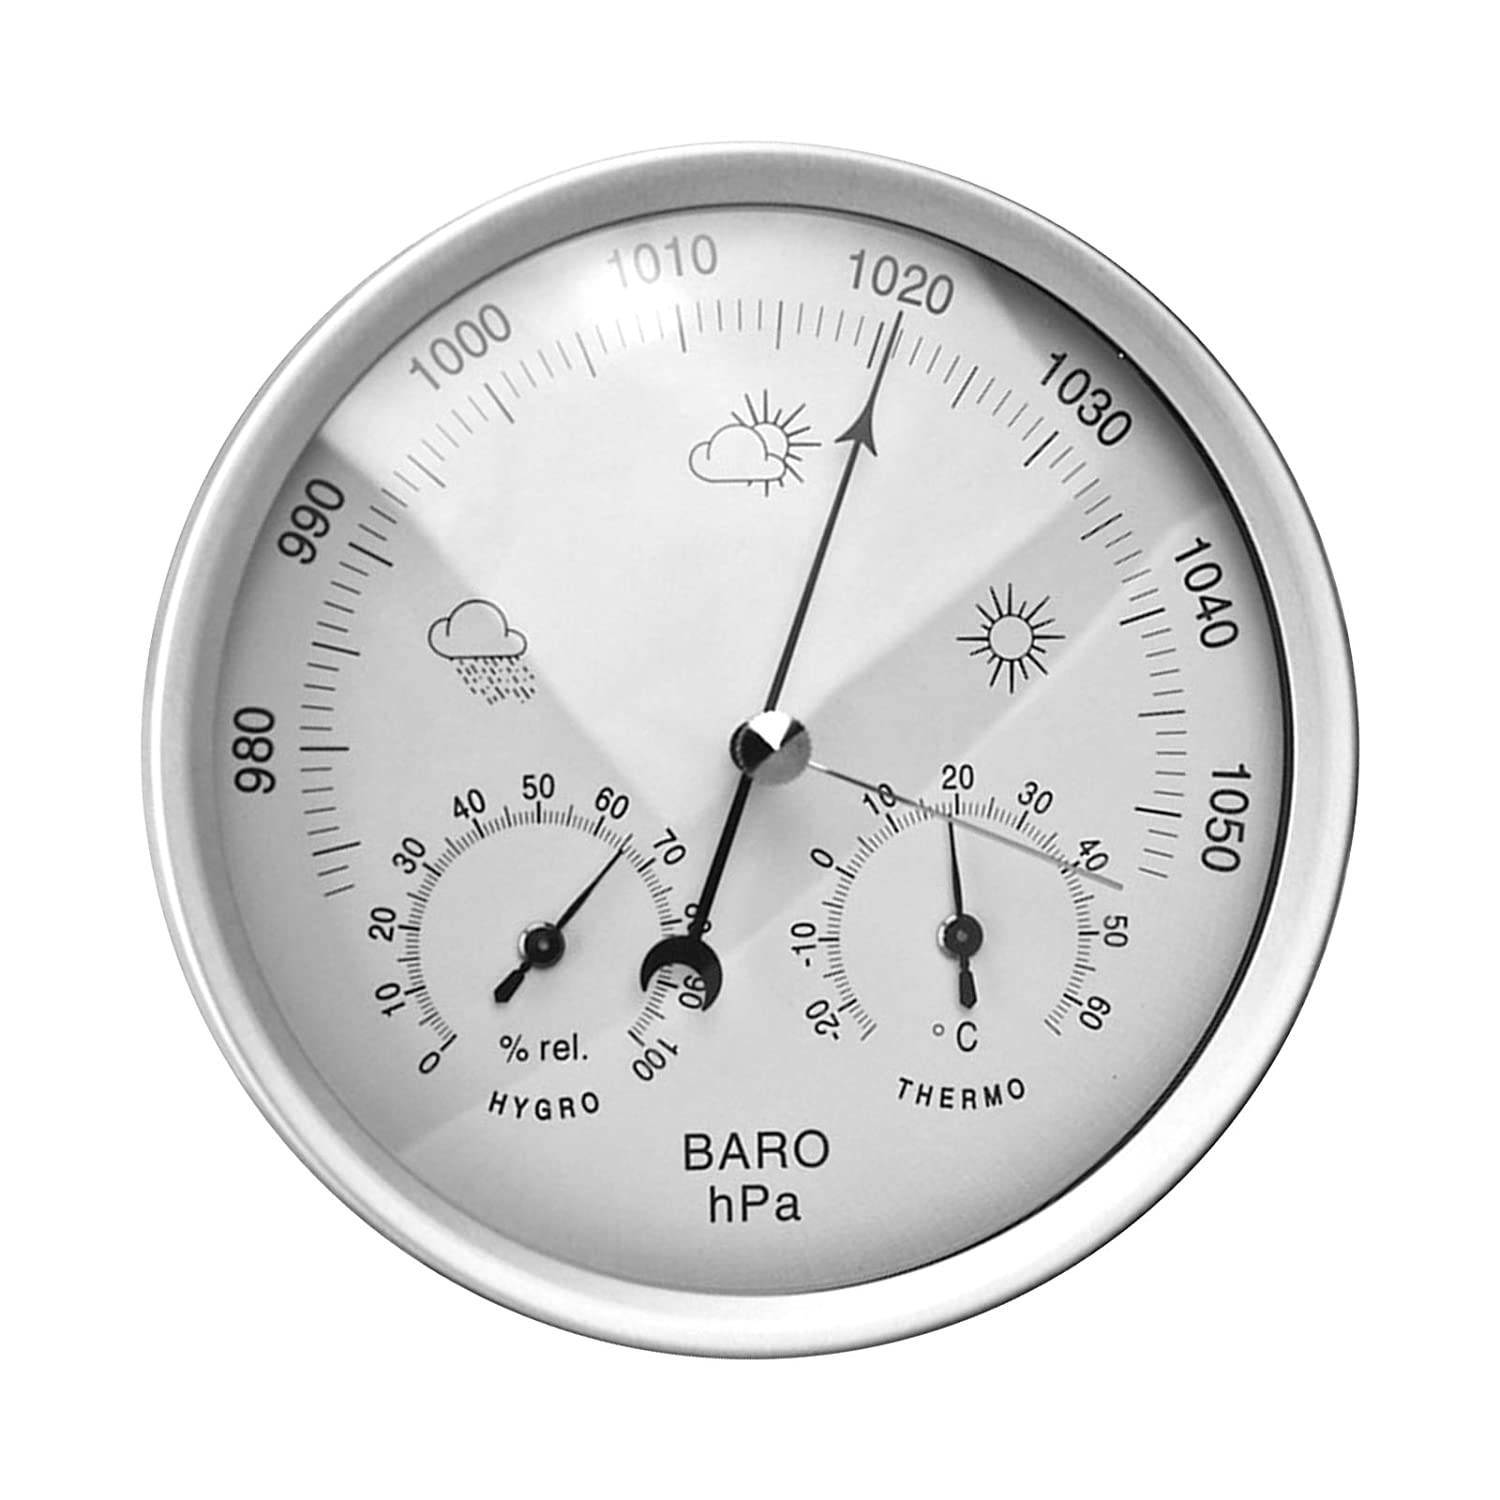 3 in 1 Weather Station Over item handling for Outdoor Store Indoor Barometer and Thermom